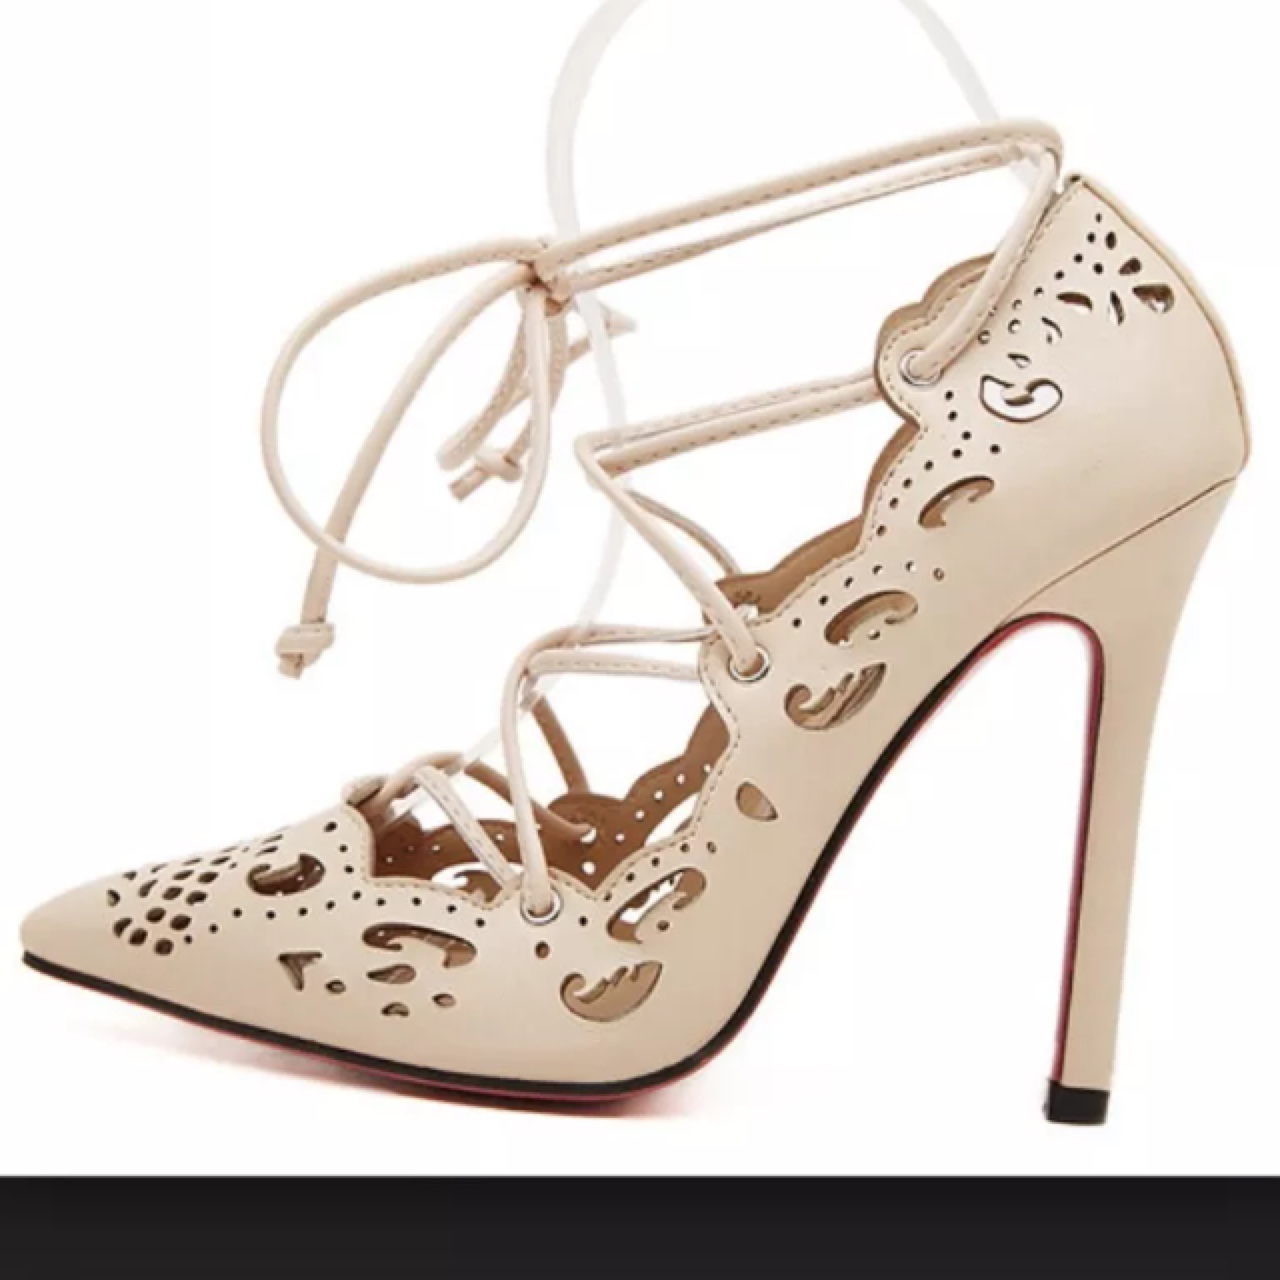 Black Lace Stiletto Pumps With Red Soles Pictures, Photos